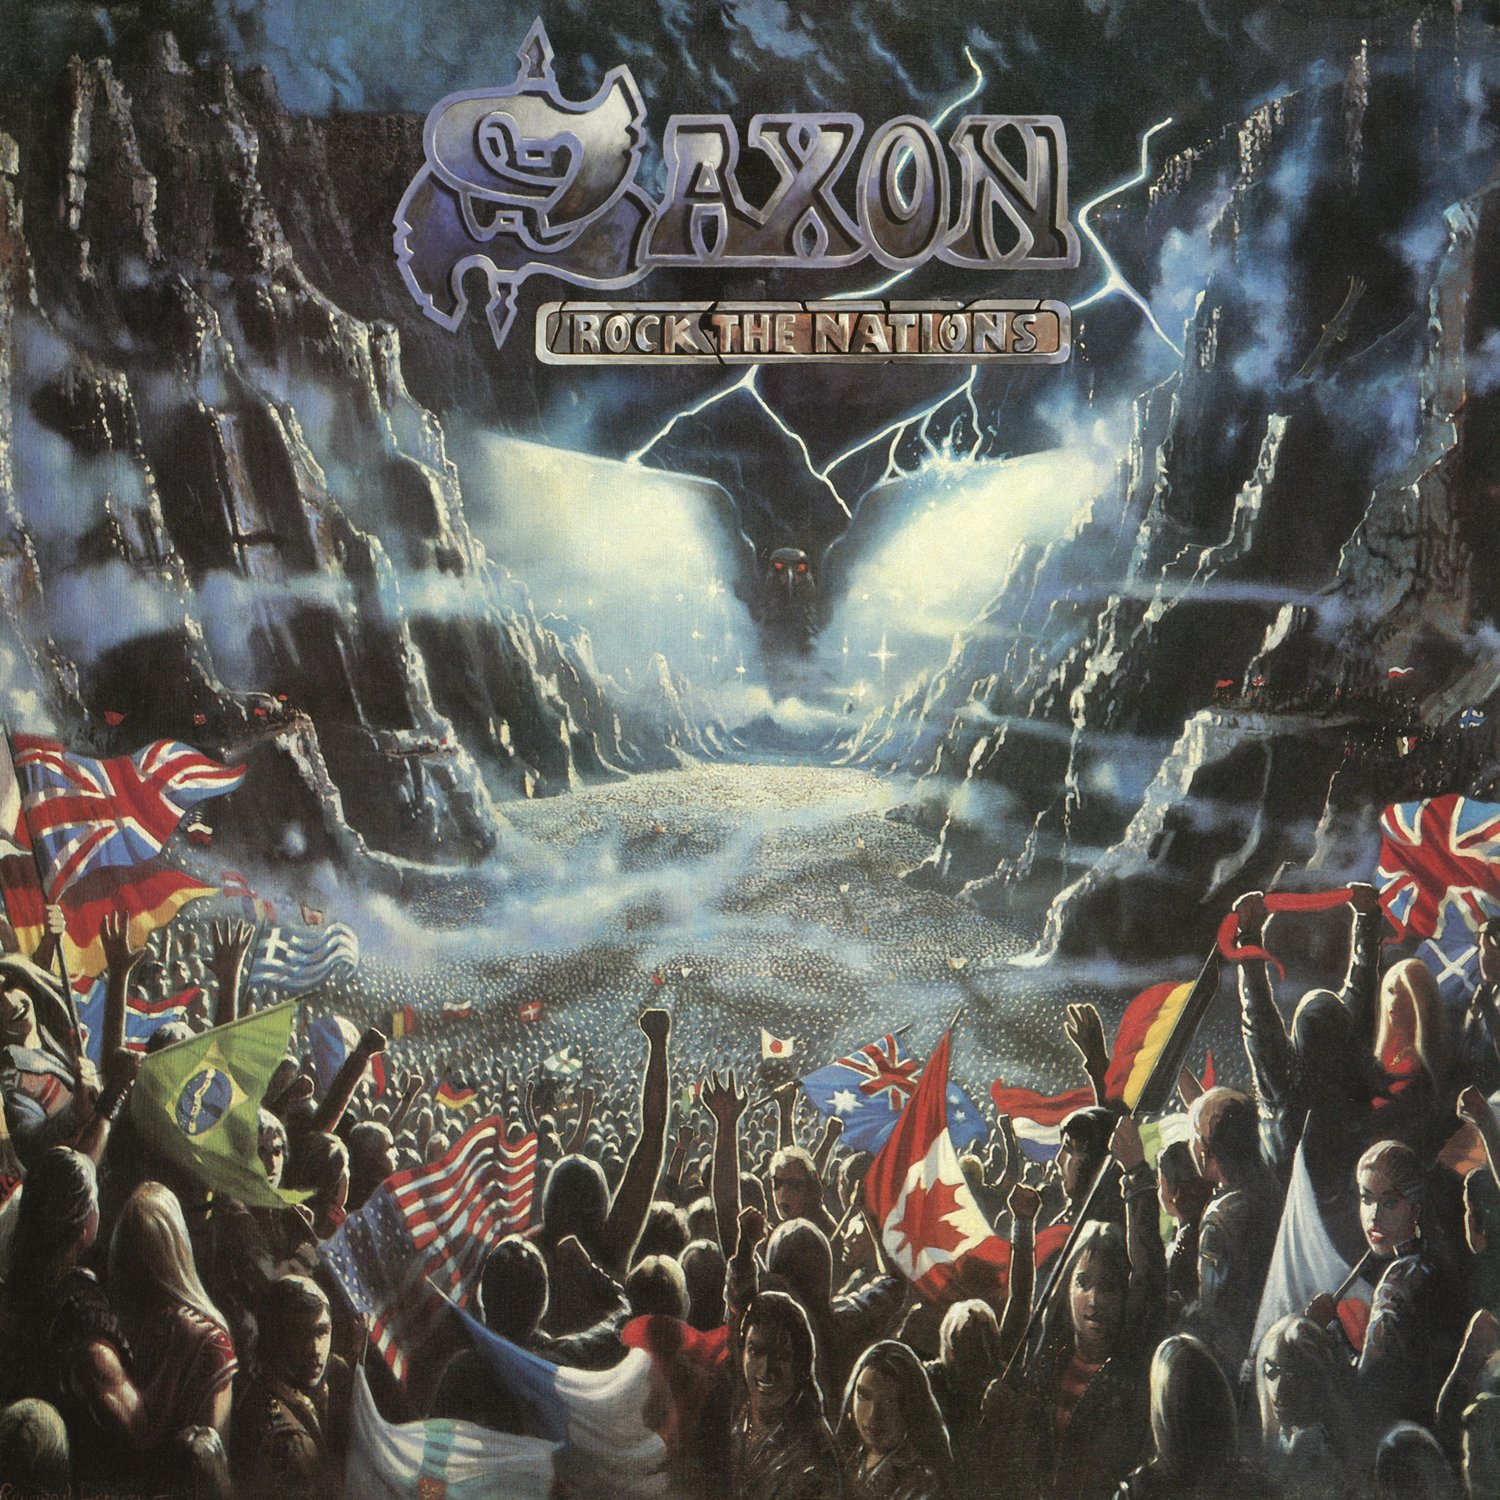 Saxon-Rock The Nations-(BMGCAT165CD)-Reissue Remastered-CD-FLAC-2018-RUiL